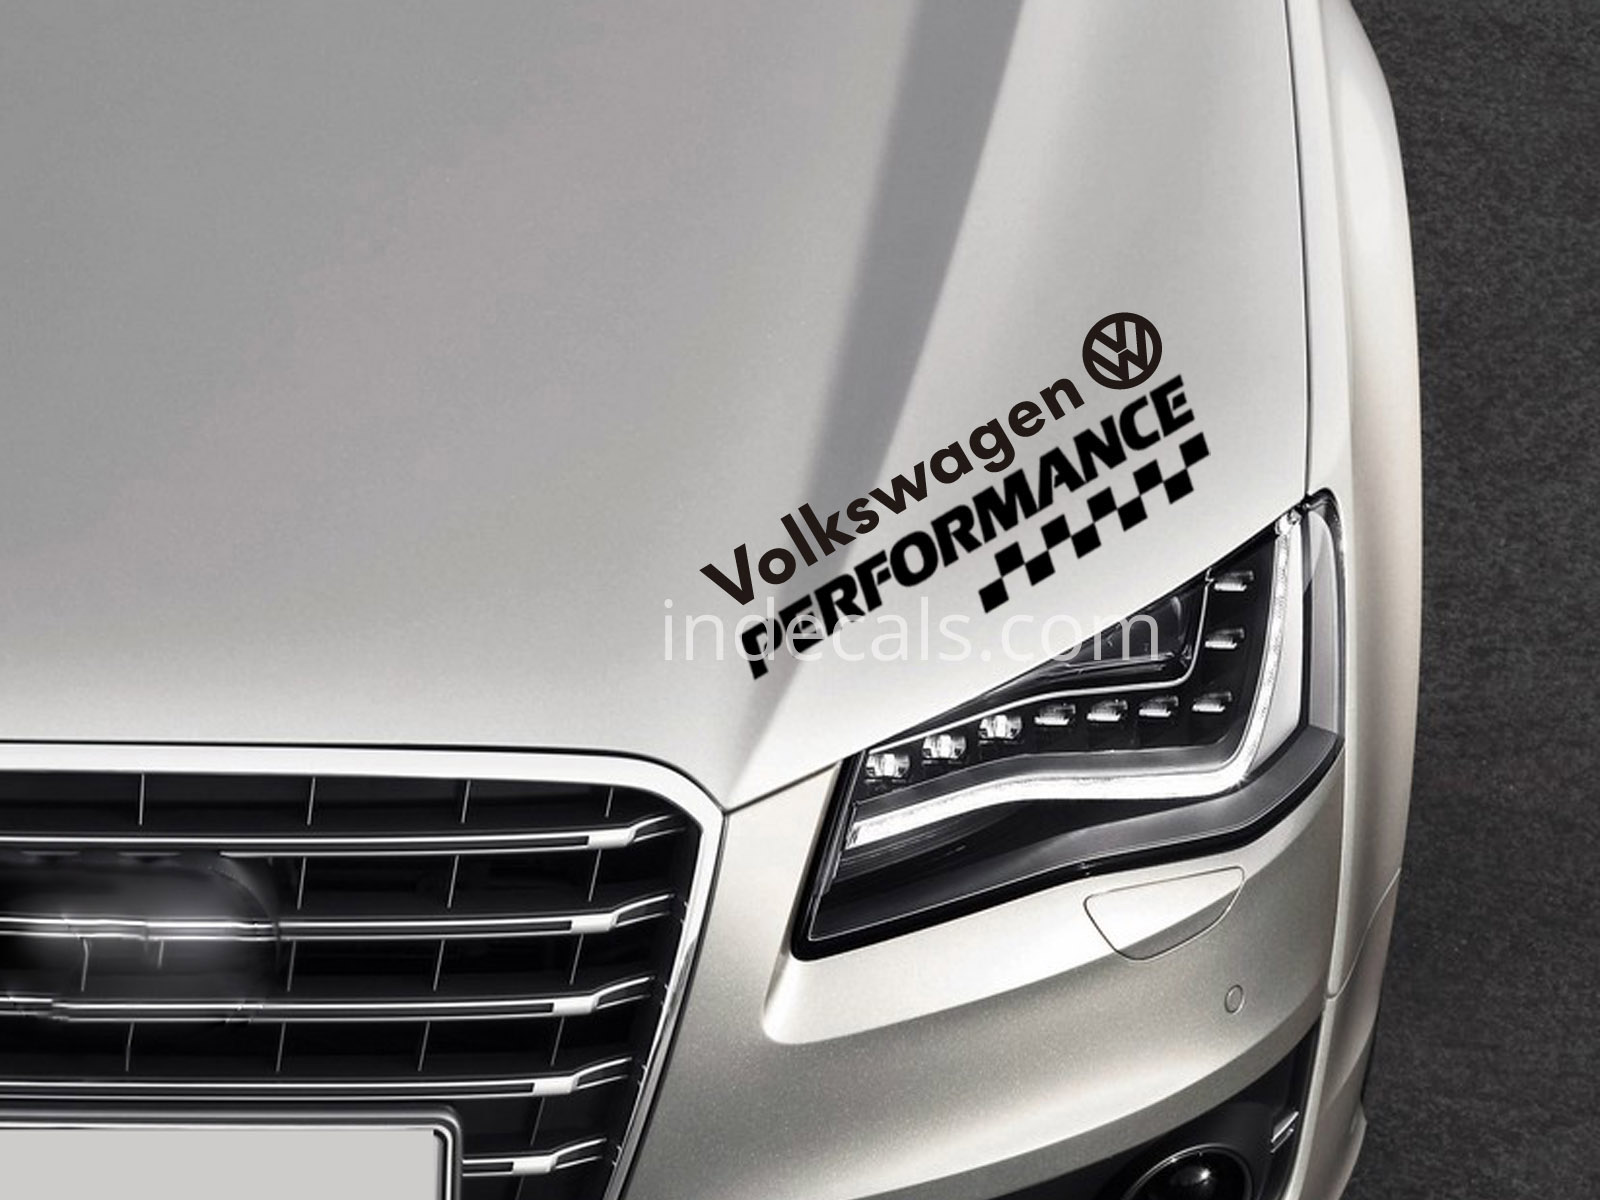 1 x Volkswagen Performance Sticker - Black